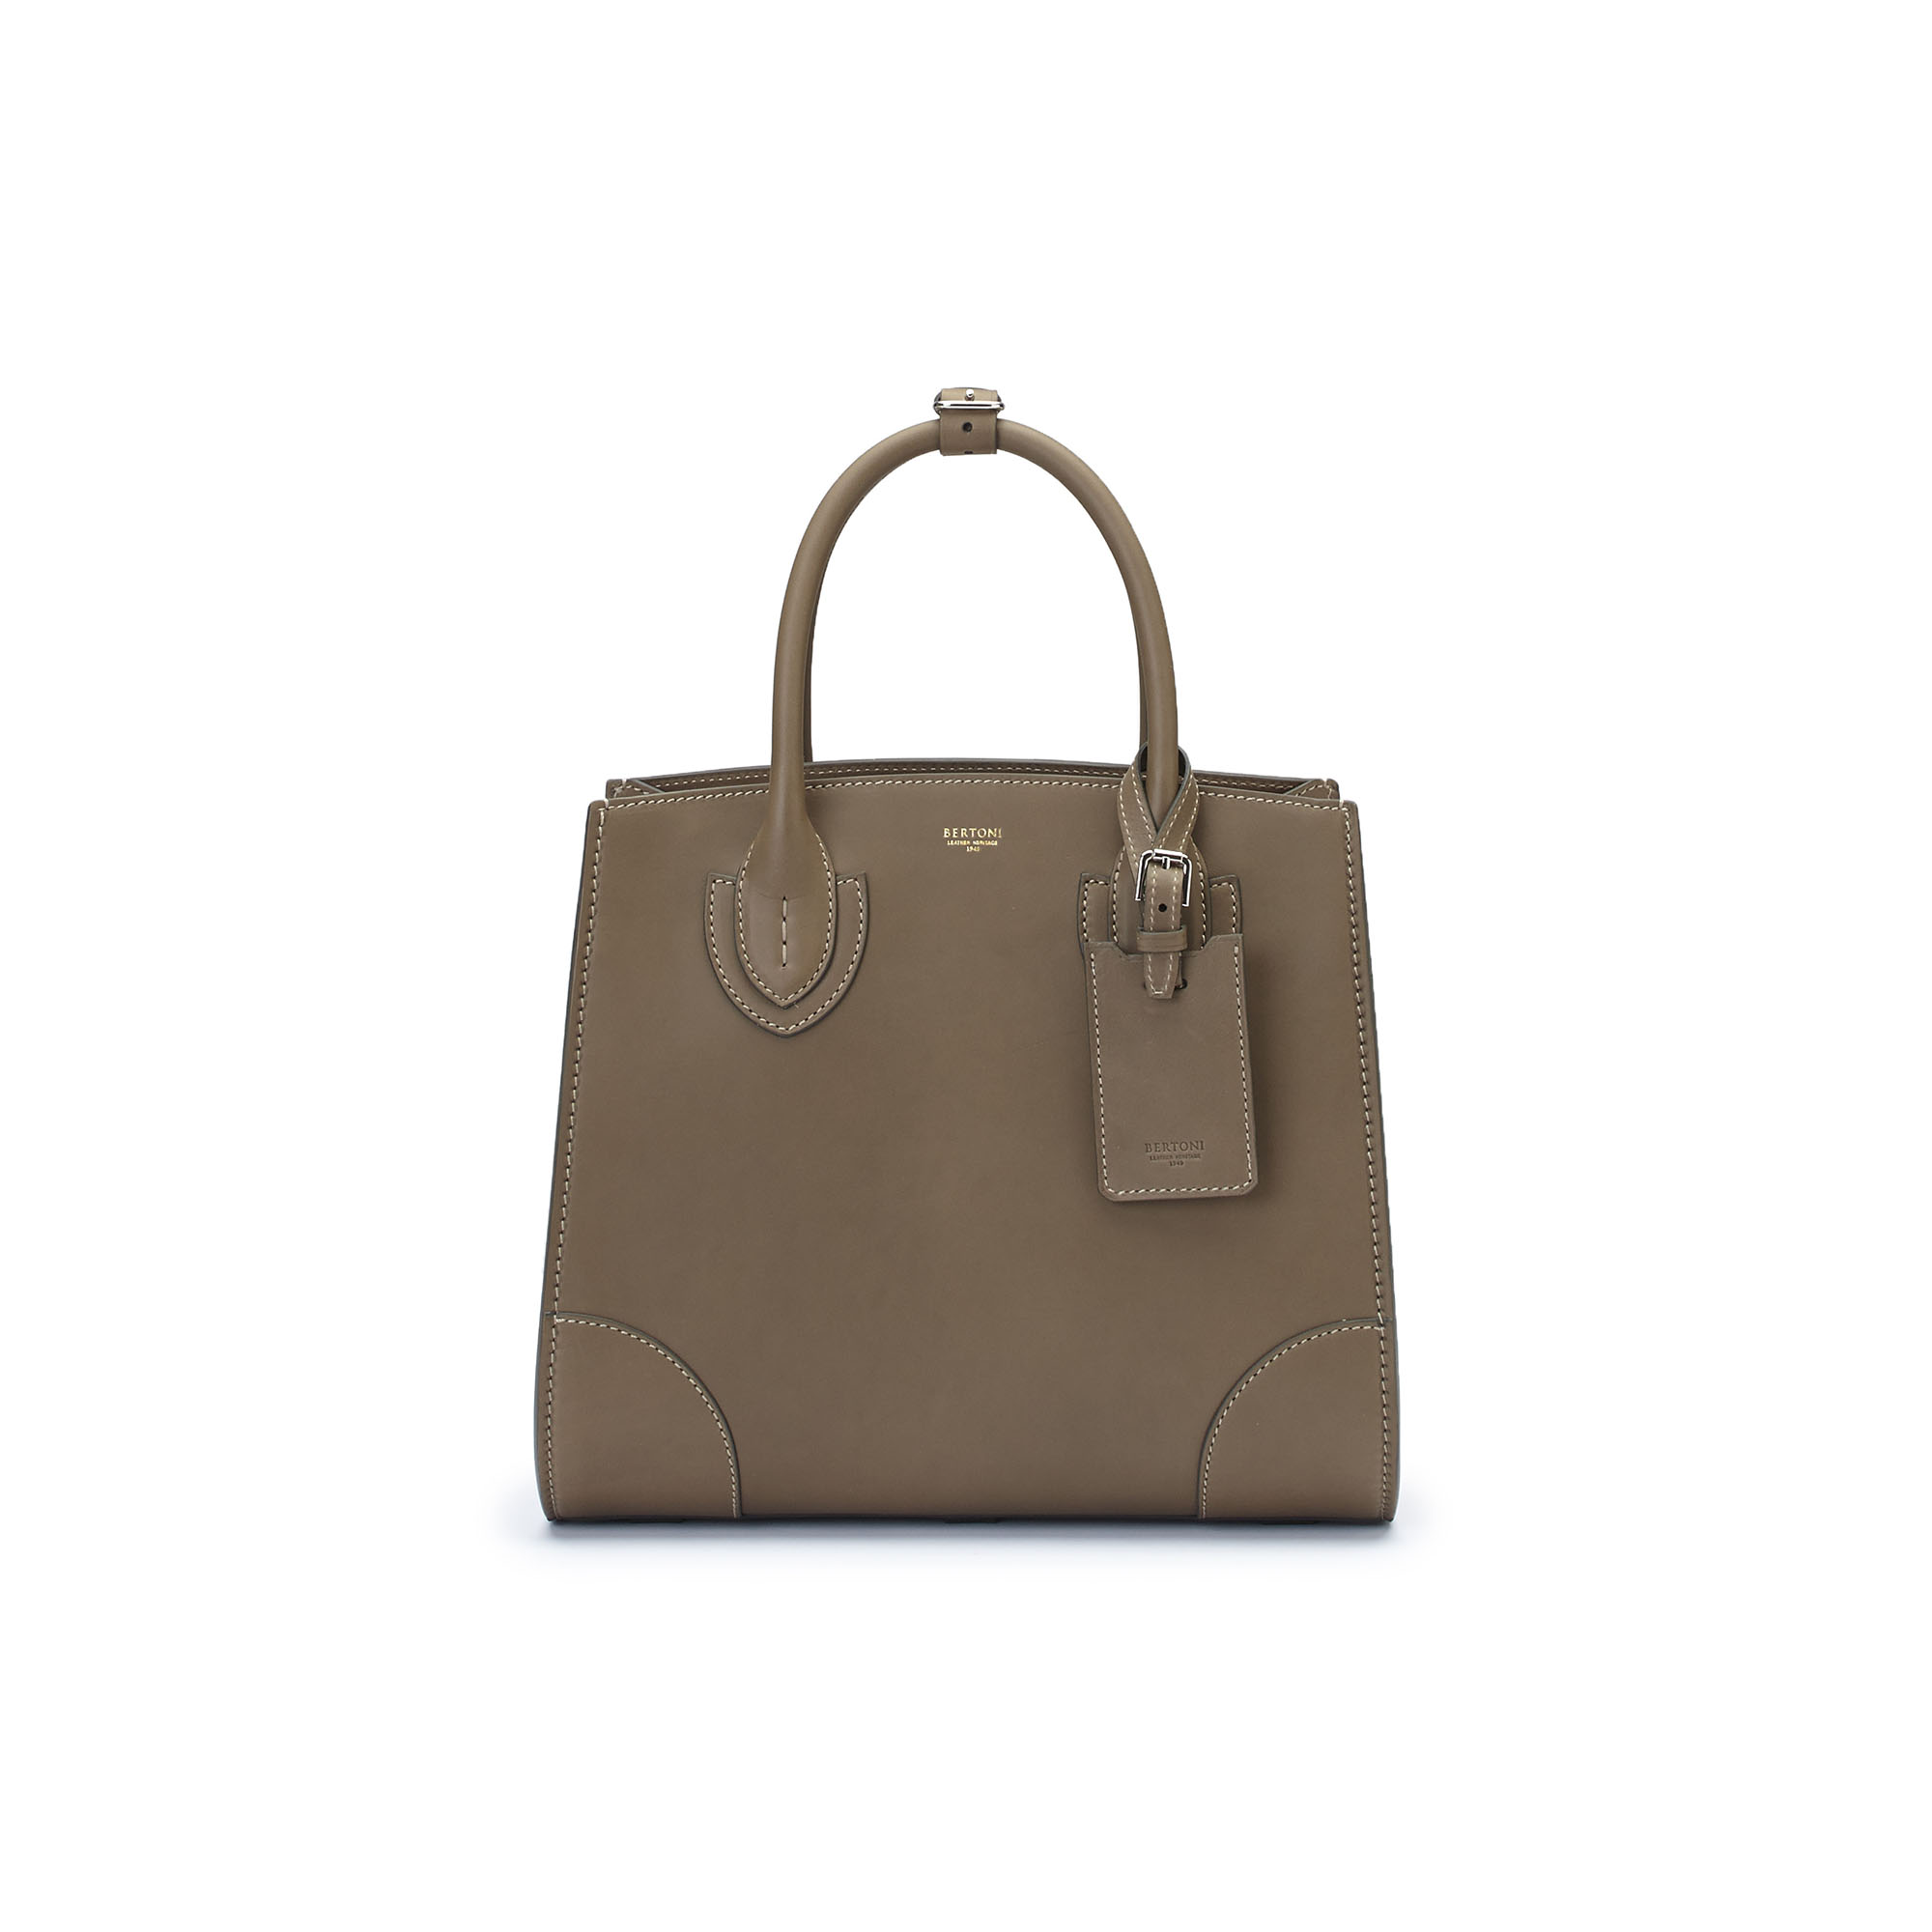 The military green french calf Darcy bag by Bertoni 1949 01